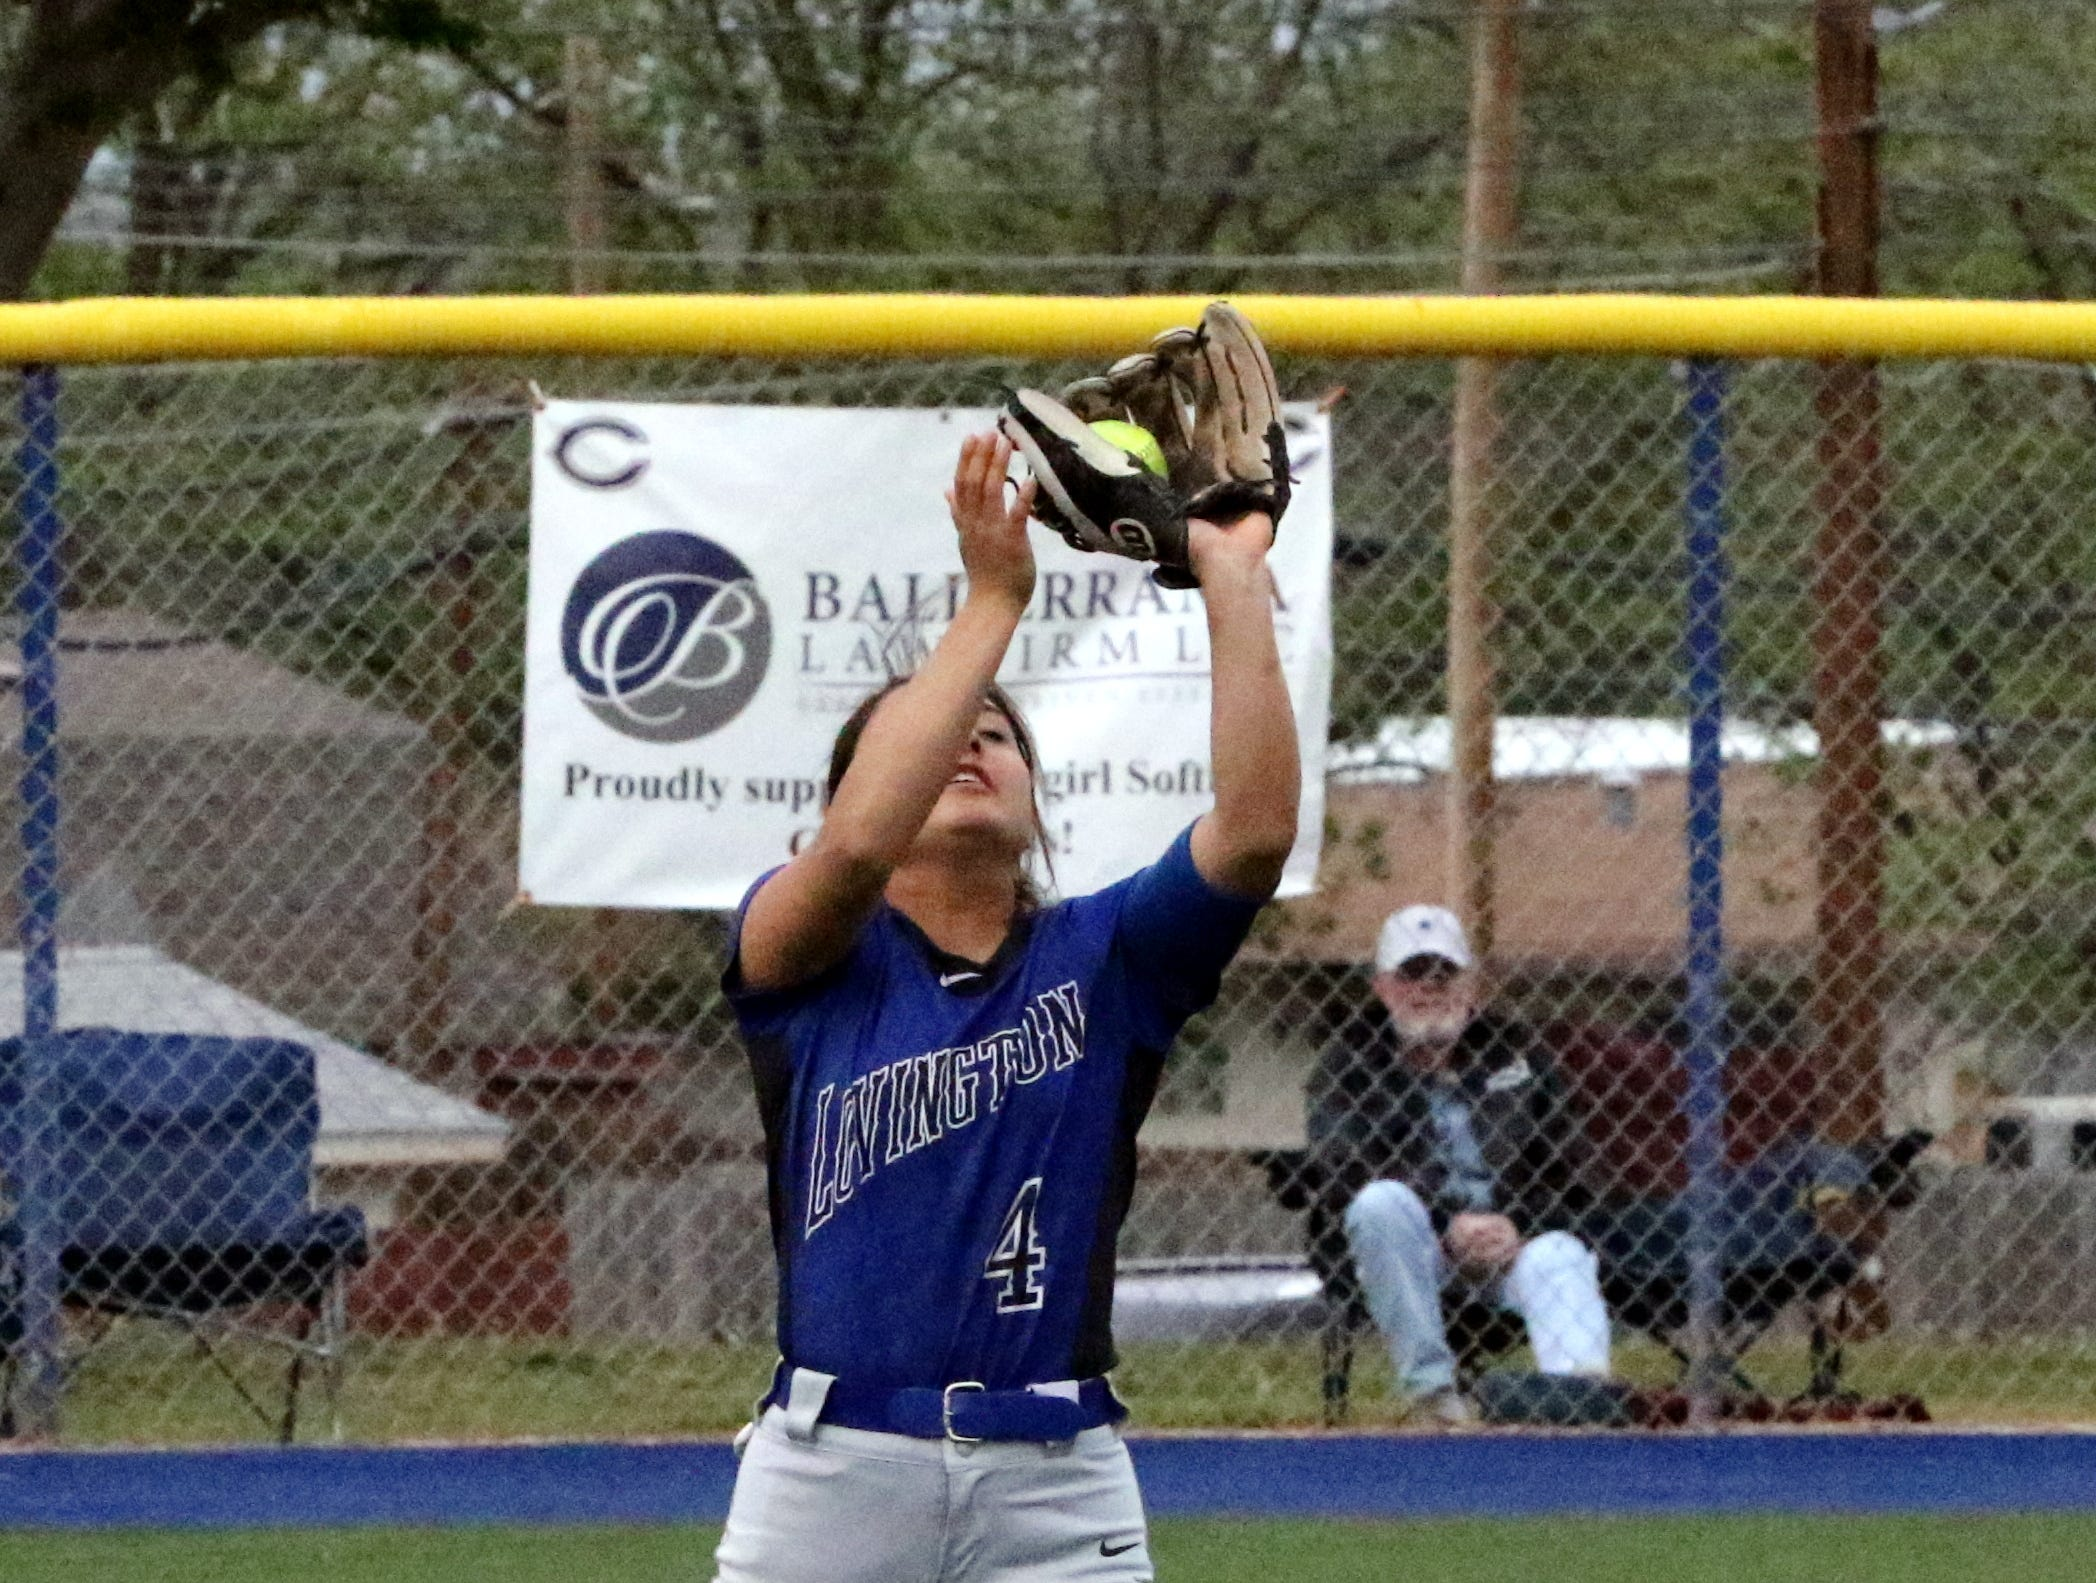 Lovington's Hayley Marquez records a flyout against Carlsbad in the first game of Friday's doubleheader.